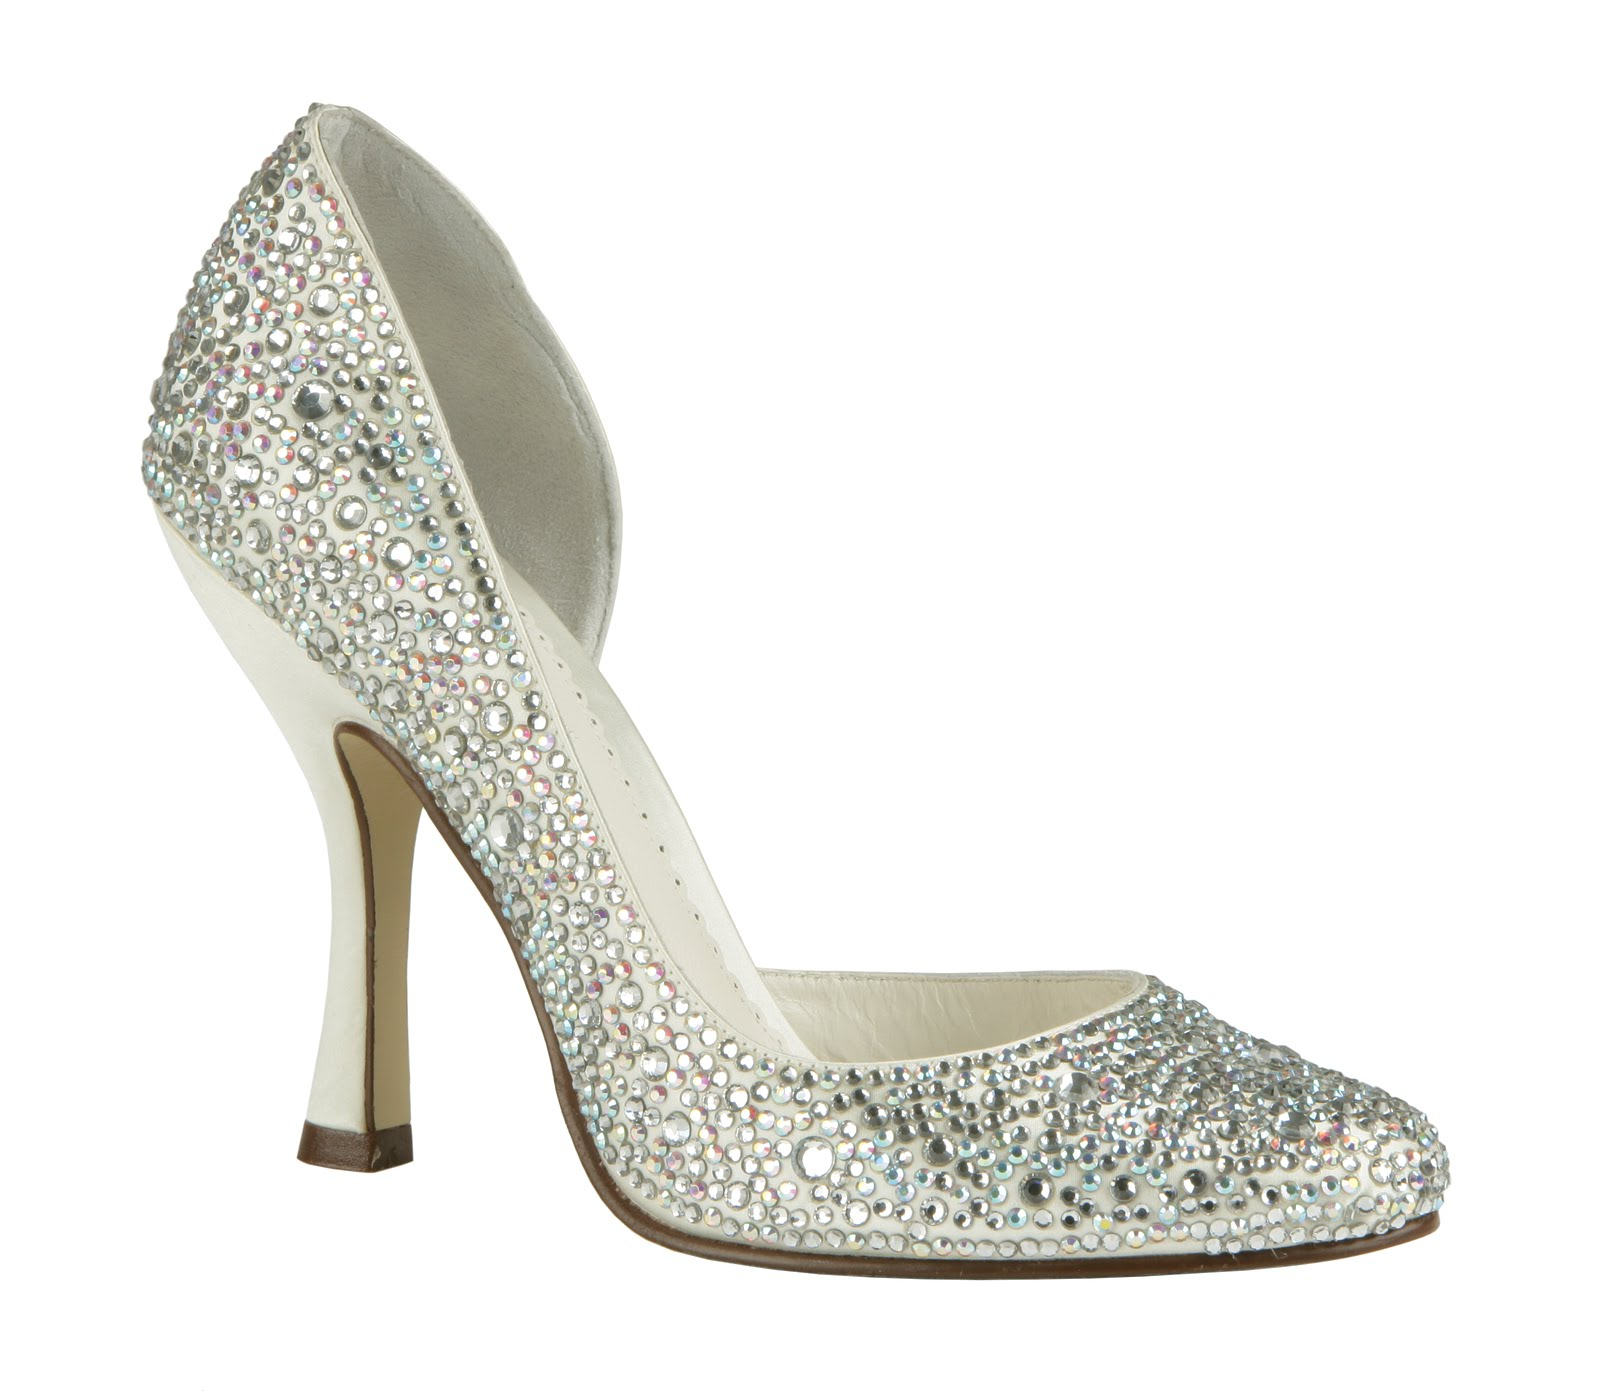 Looking For Non Traditional Bridal Shoes Meet The Newest Wedding From Benjamin Adams All Crystal Sparkle And Fun